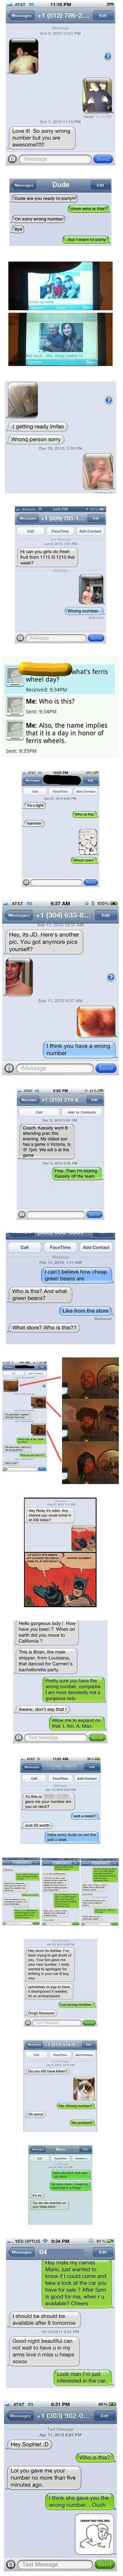 Here are some strange and funny text messages that were sent to the wrong number.